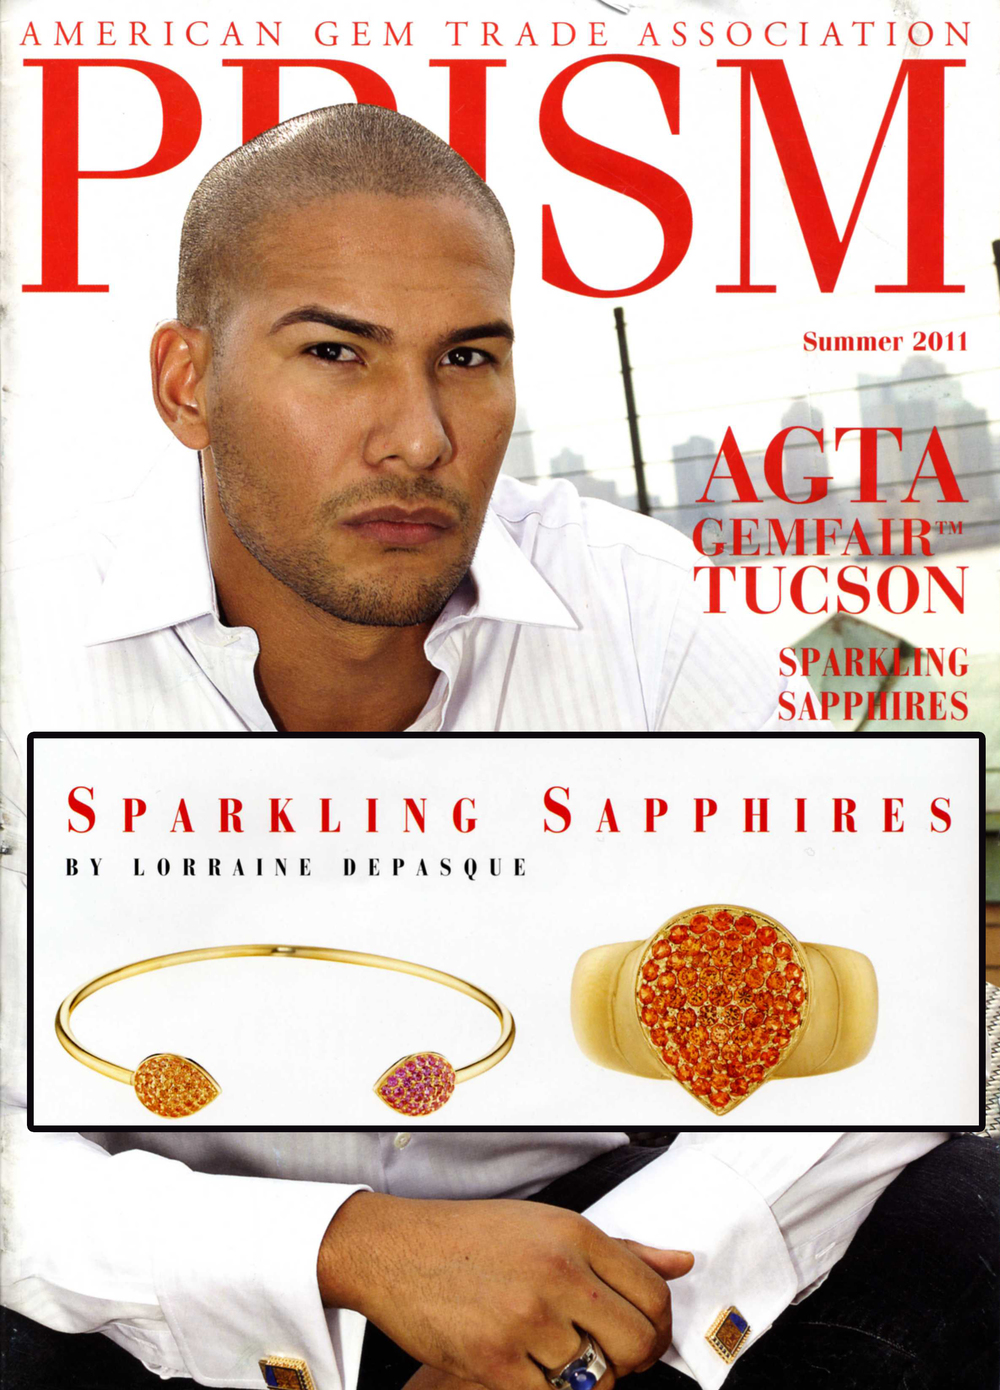 2011-7-agta cover summer.jpg